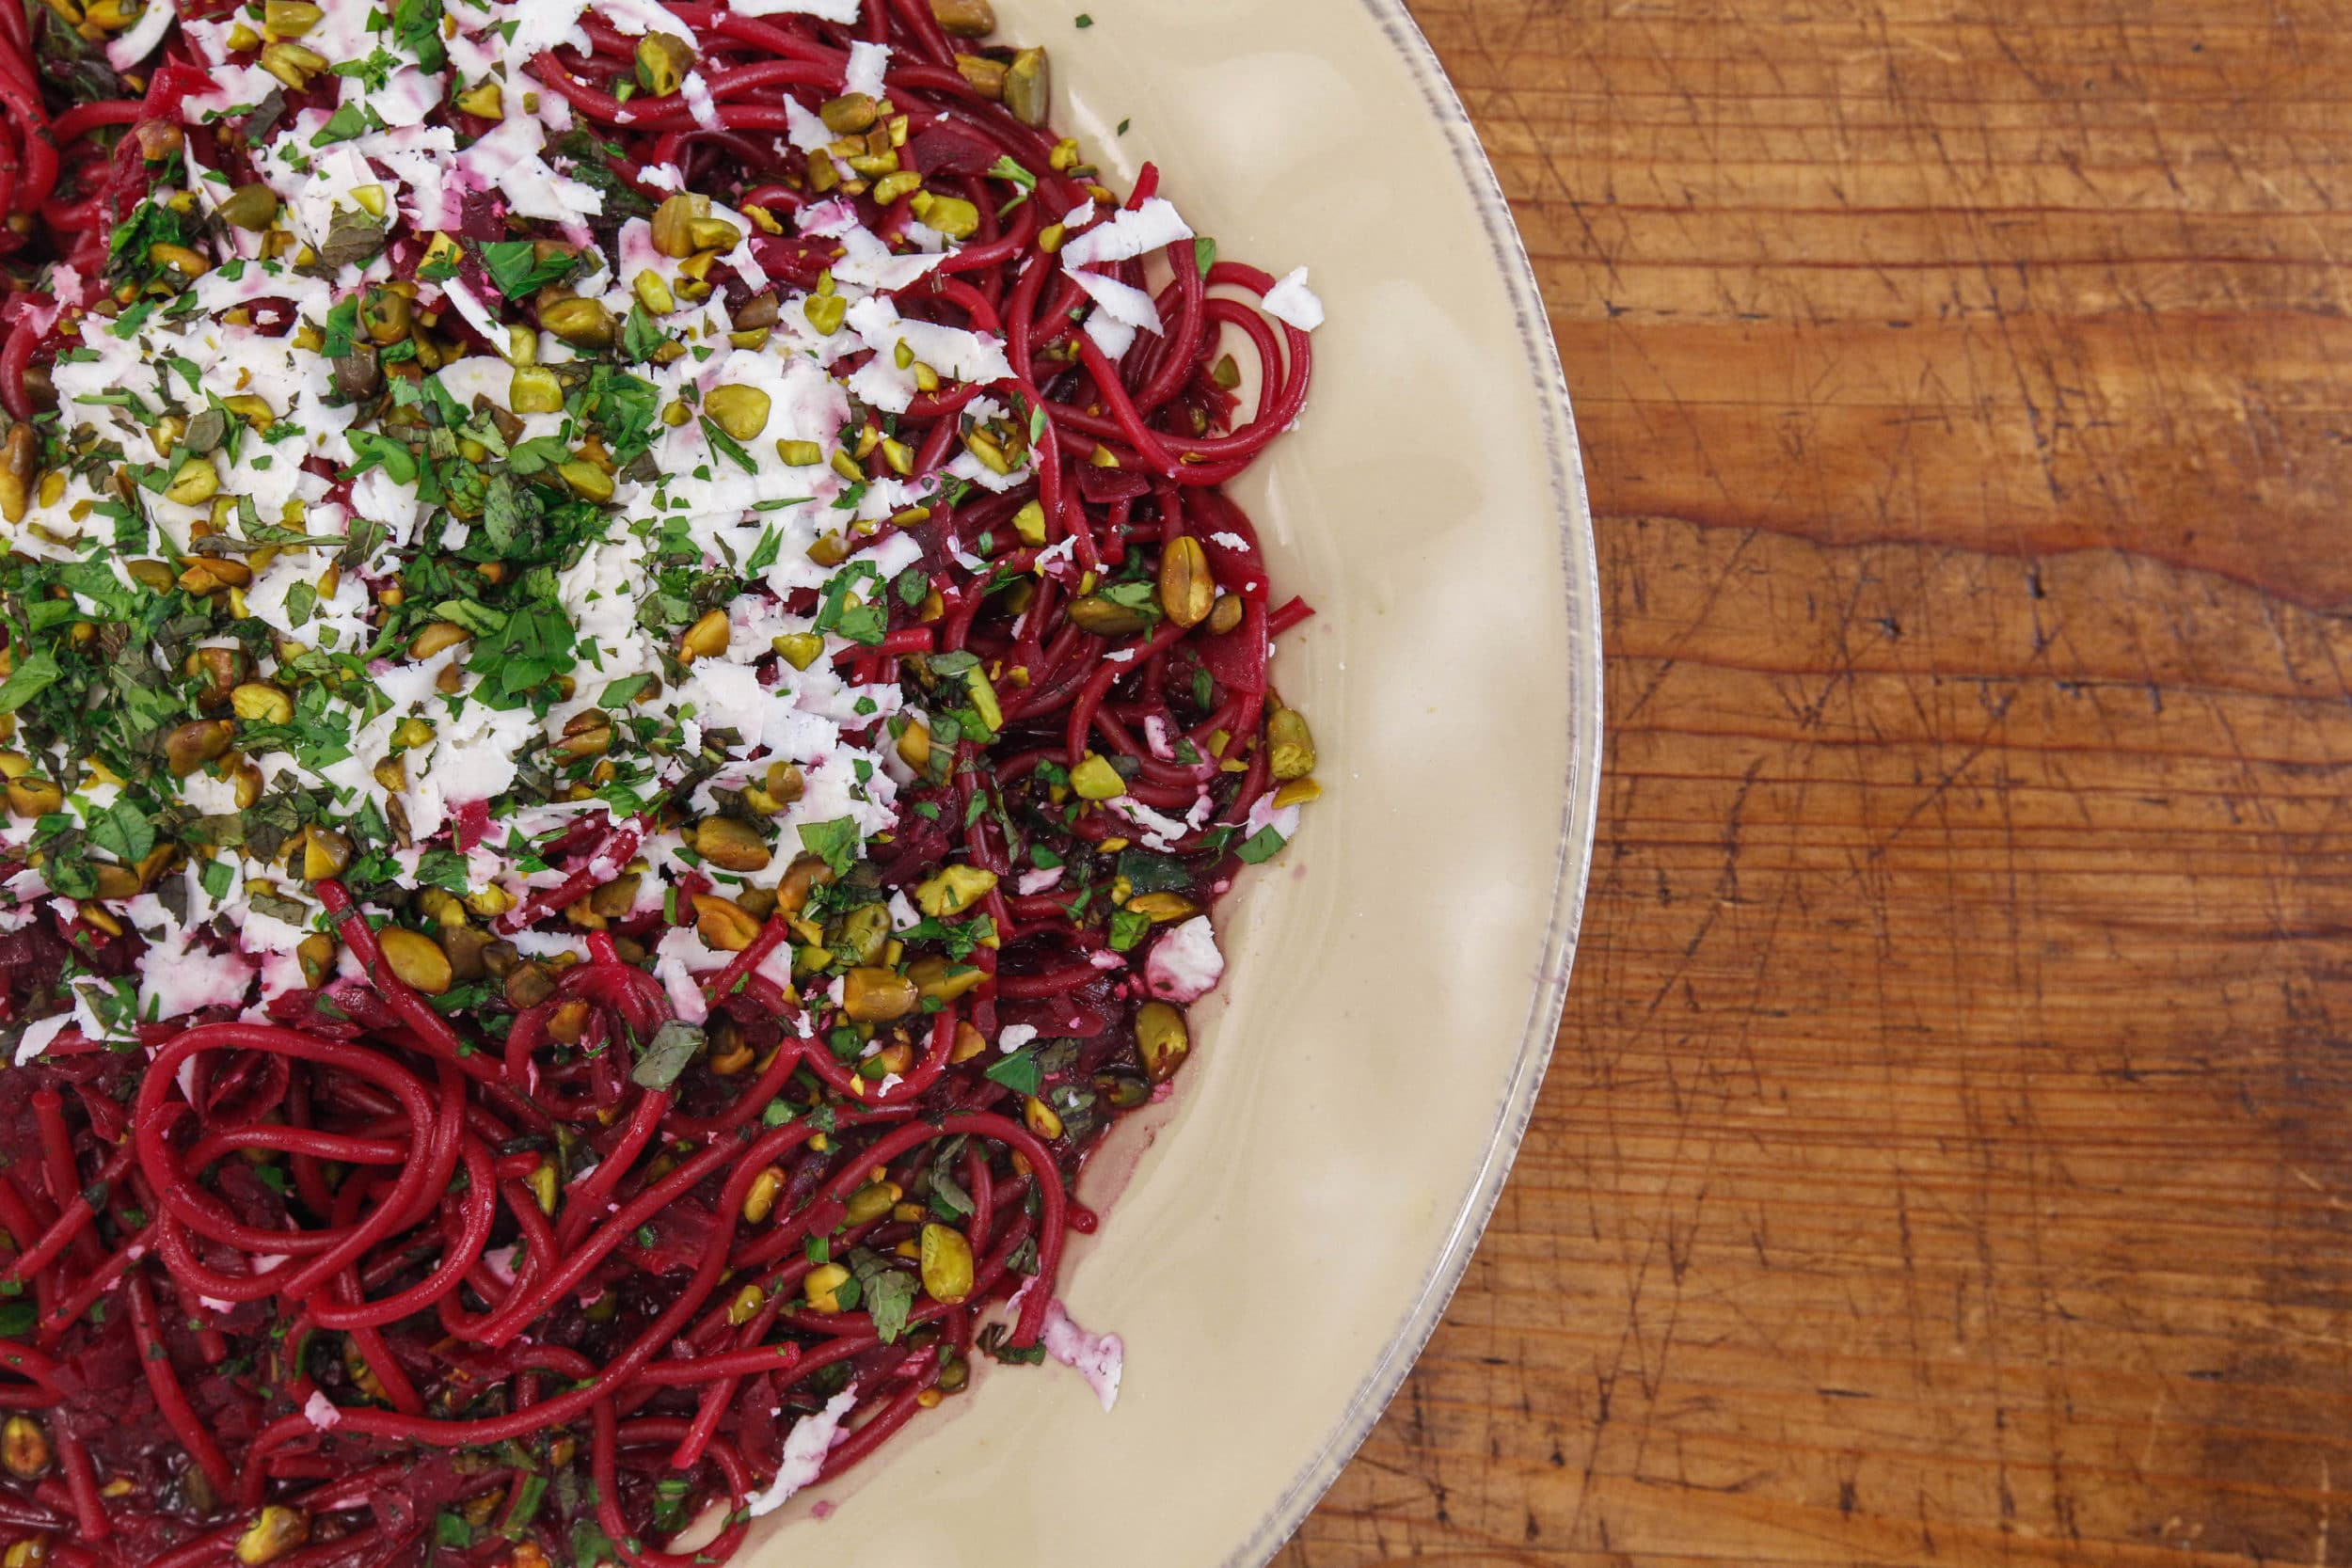 Roasted Beet Spaghetti Cooked in Red Wine